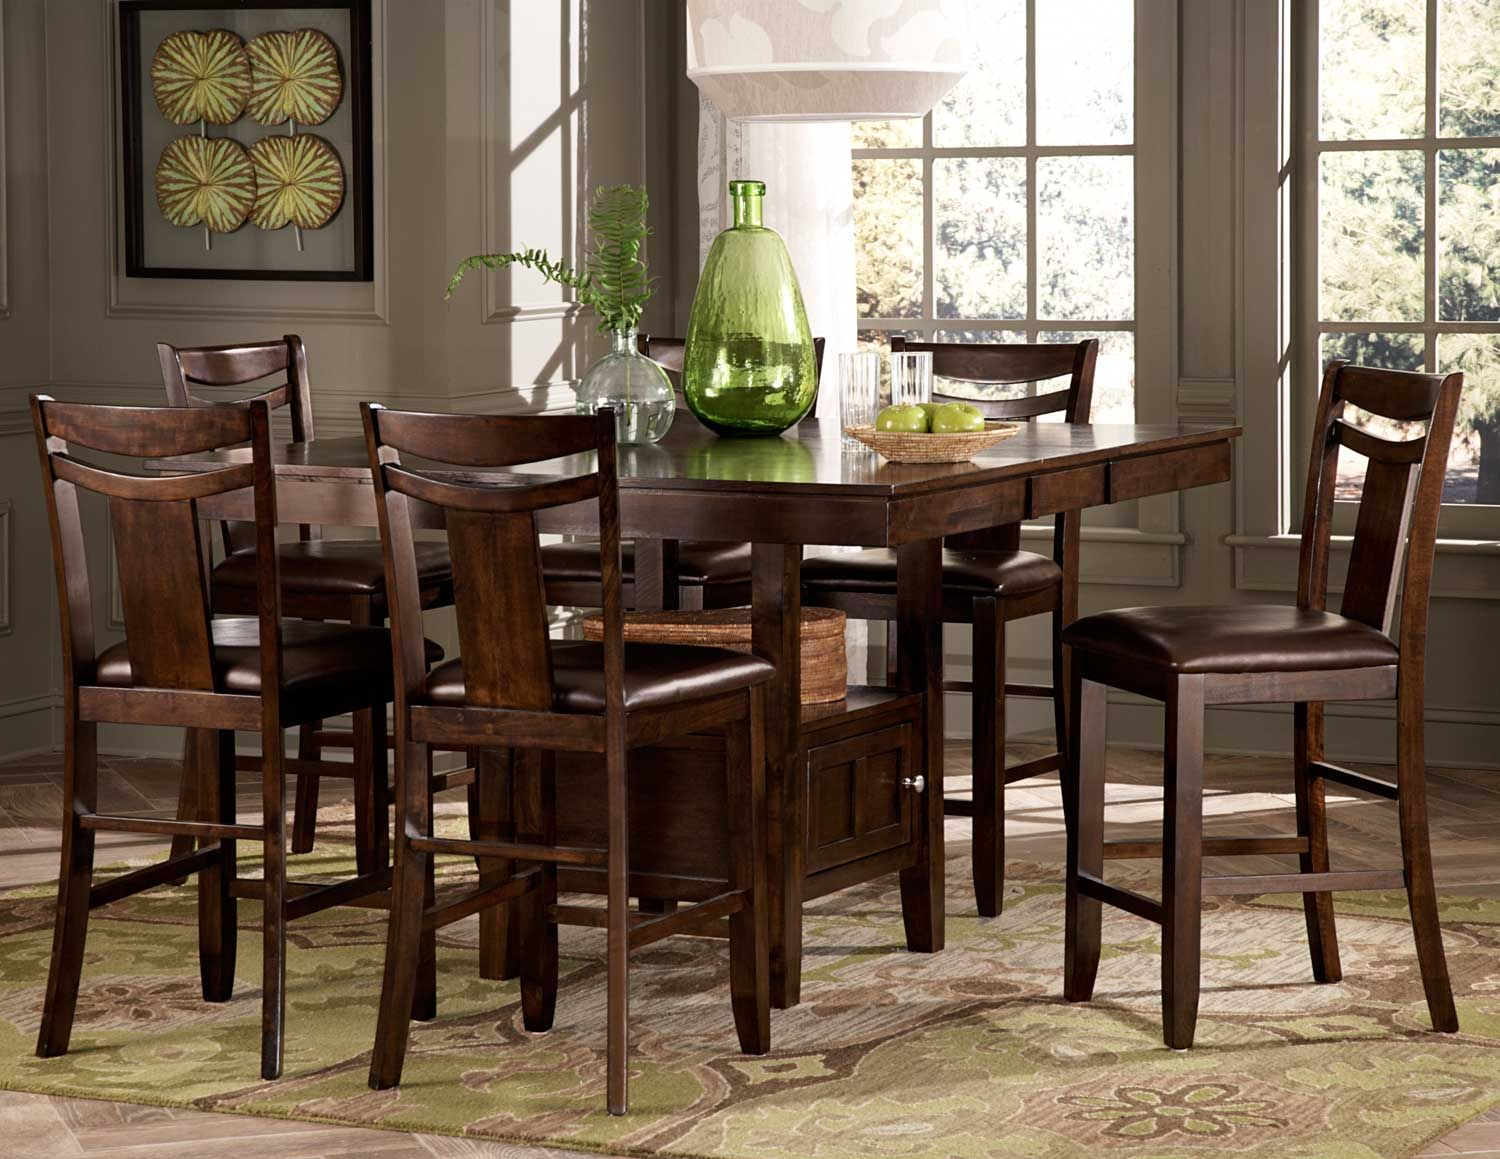 Wood Dining Chairs Super Useful Tips To Improve Your Dining Area